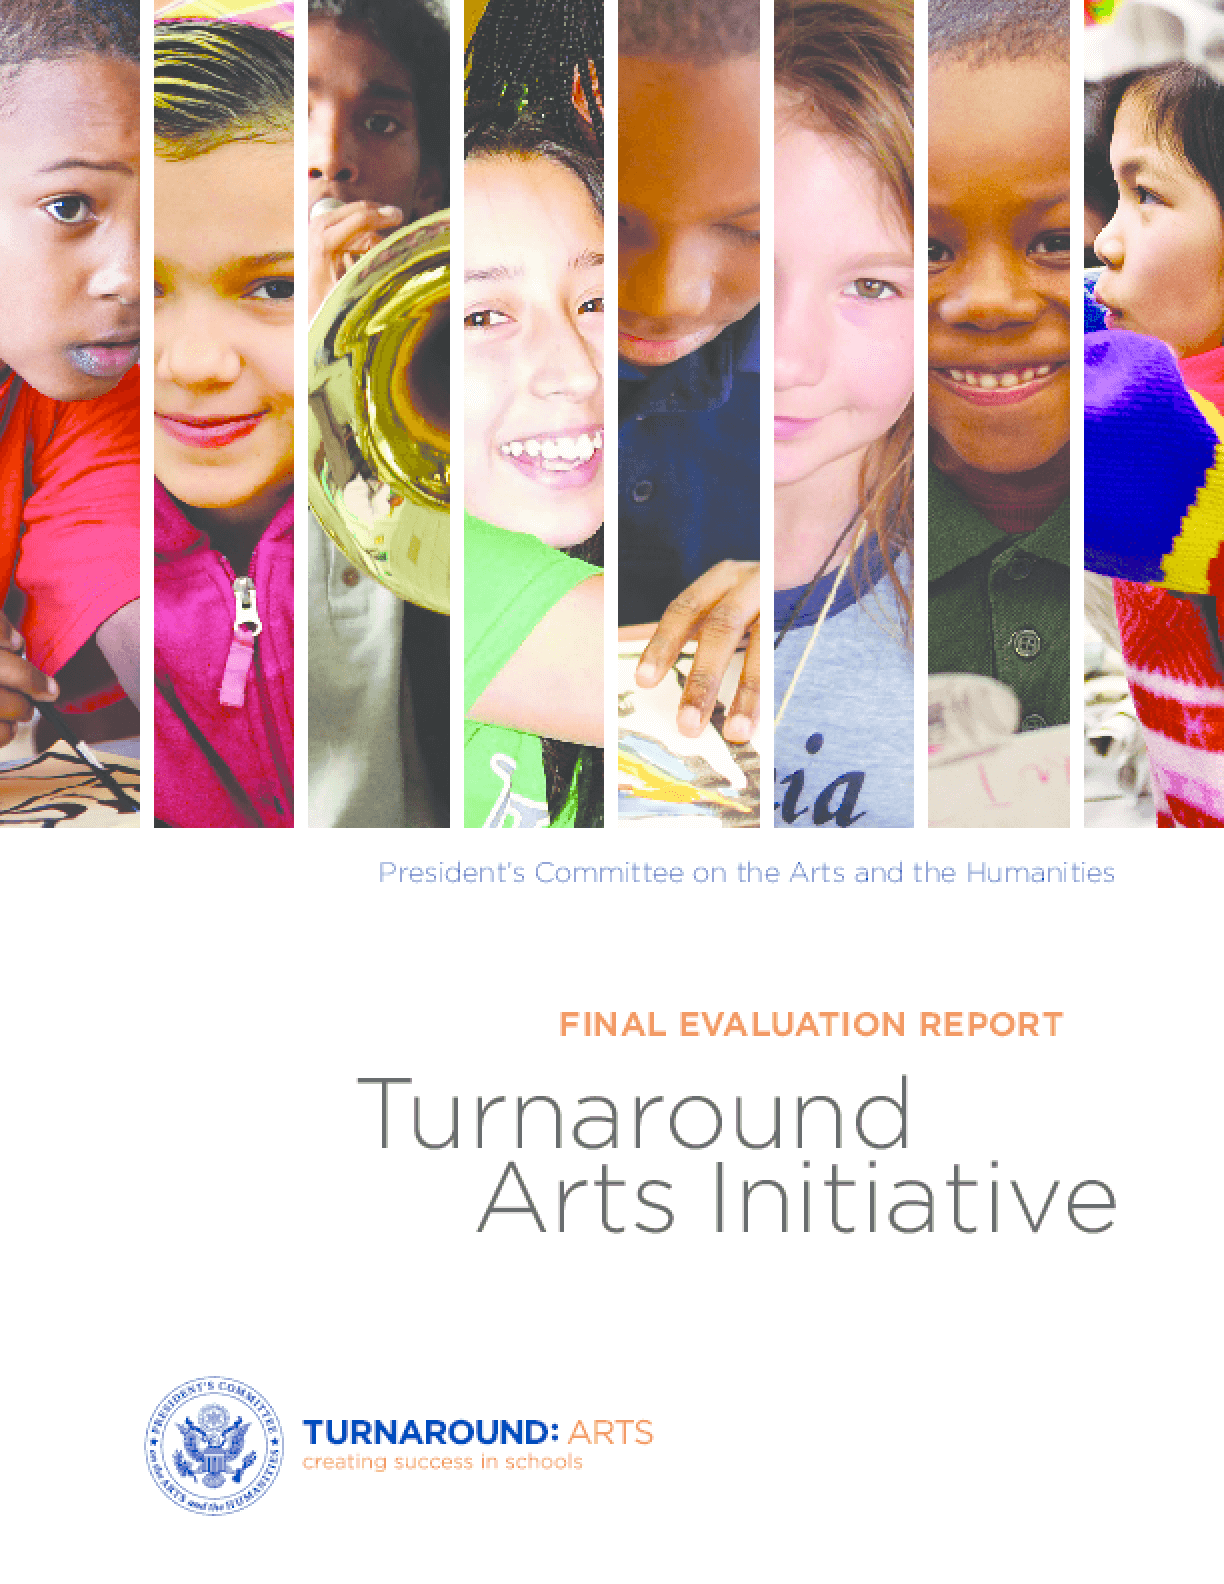 Turnaround Arts Initiative Final Evaluation Report